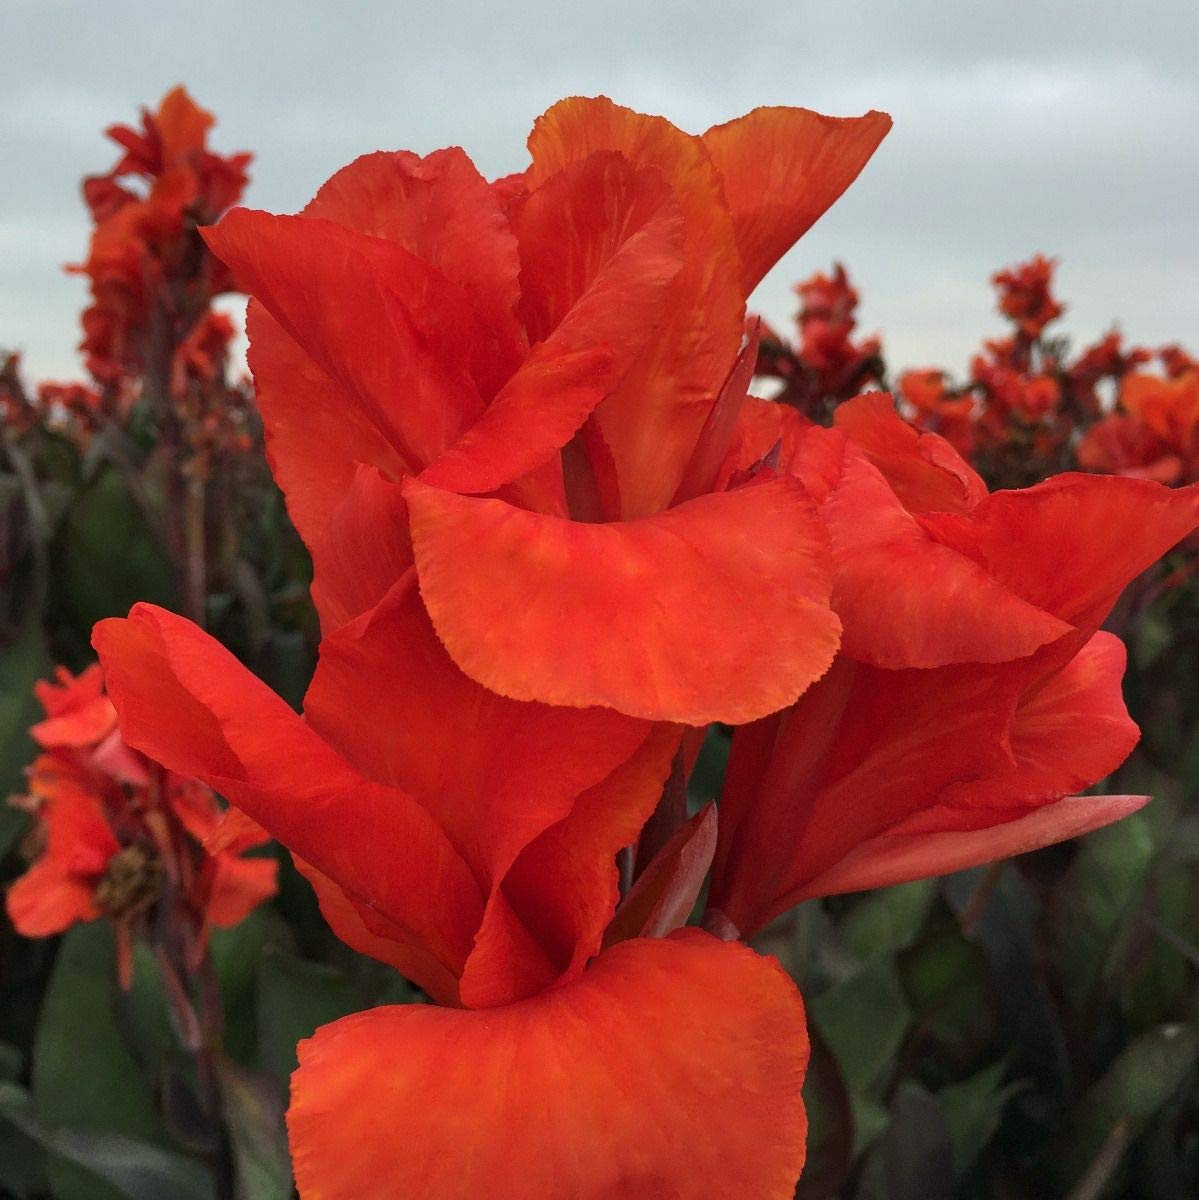 CANNAS-Red King Humbert 3 Per Bag Large 4-6 Eye Bulbs